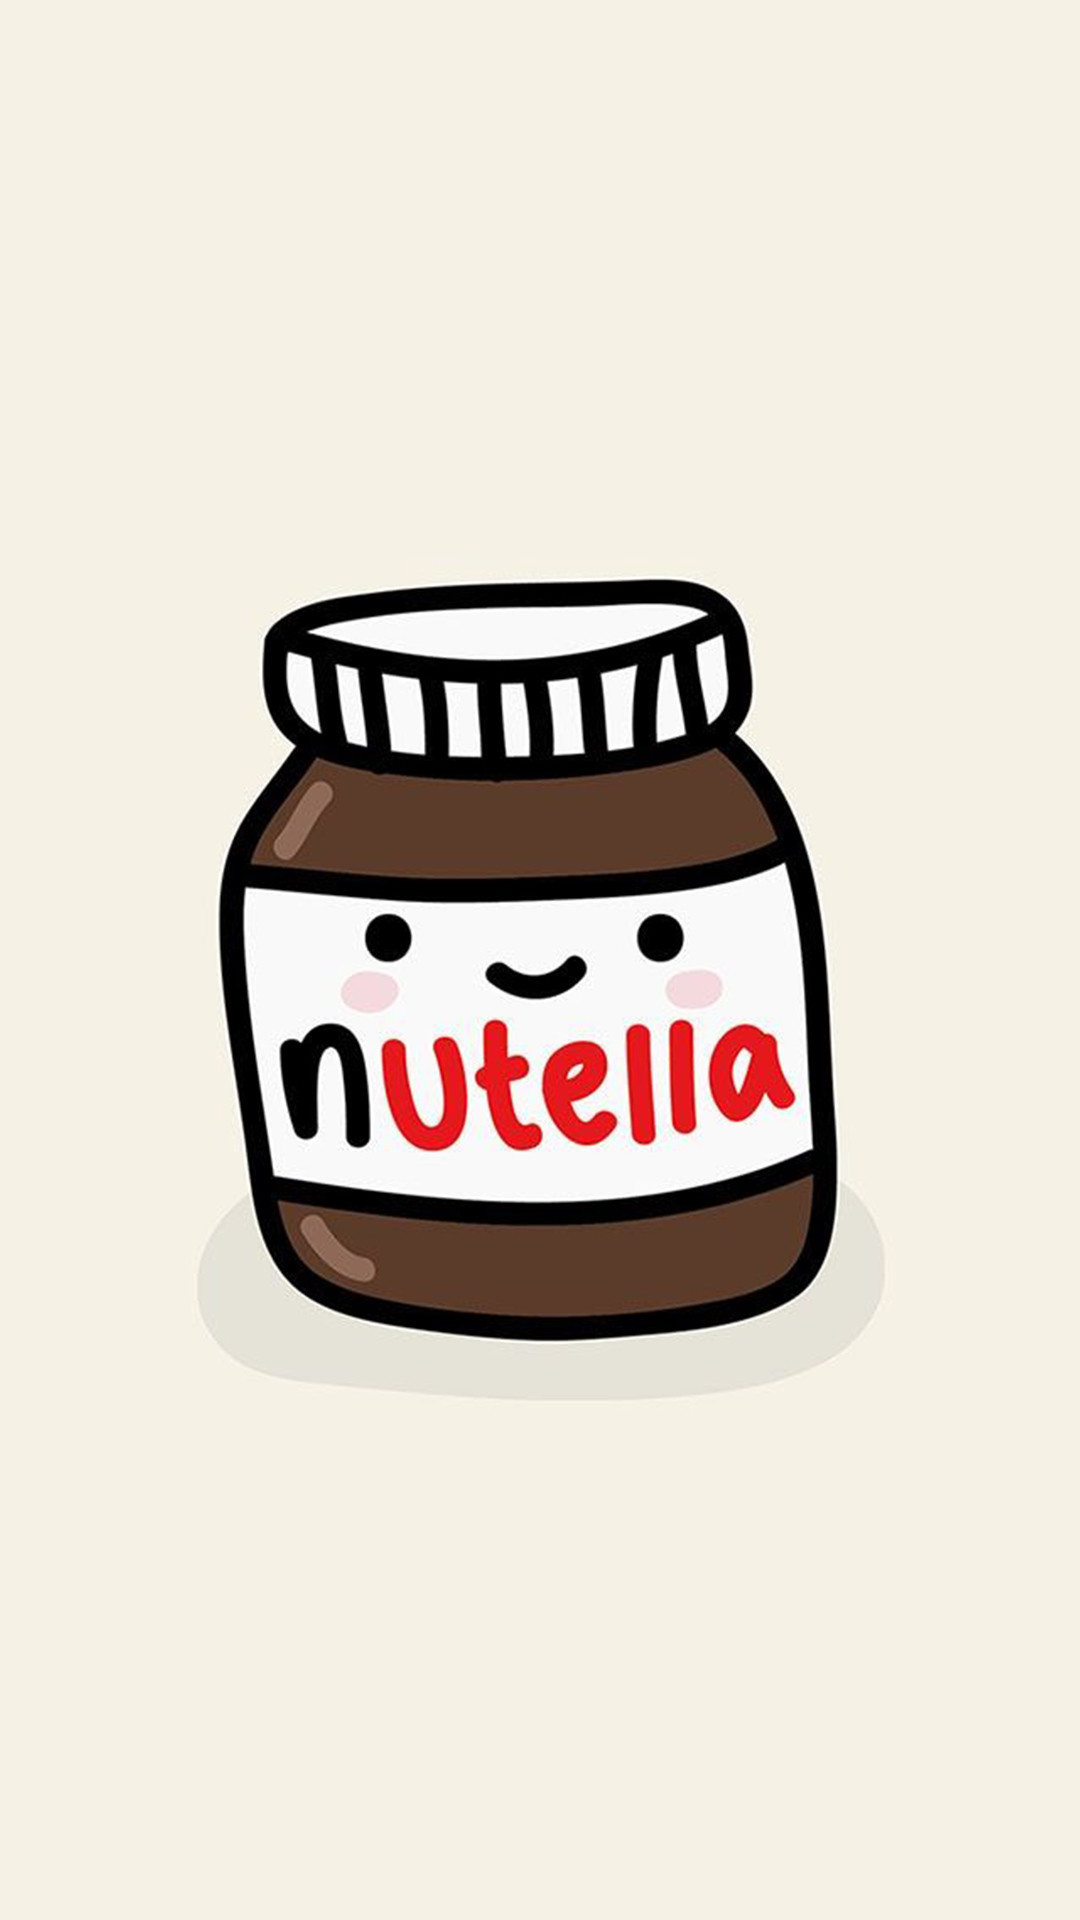 Res: 1080x1920, Cute Nutella Jar Illustration Android Wallpaper ...